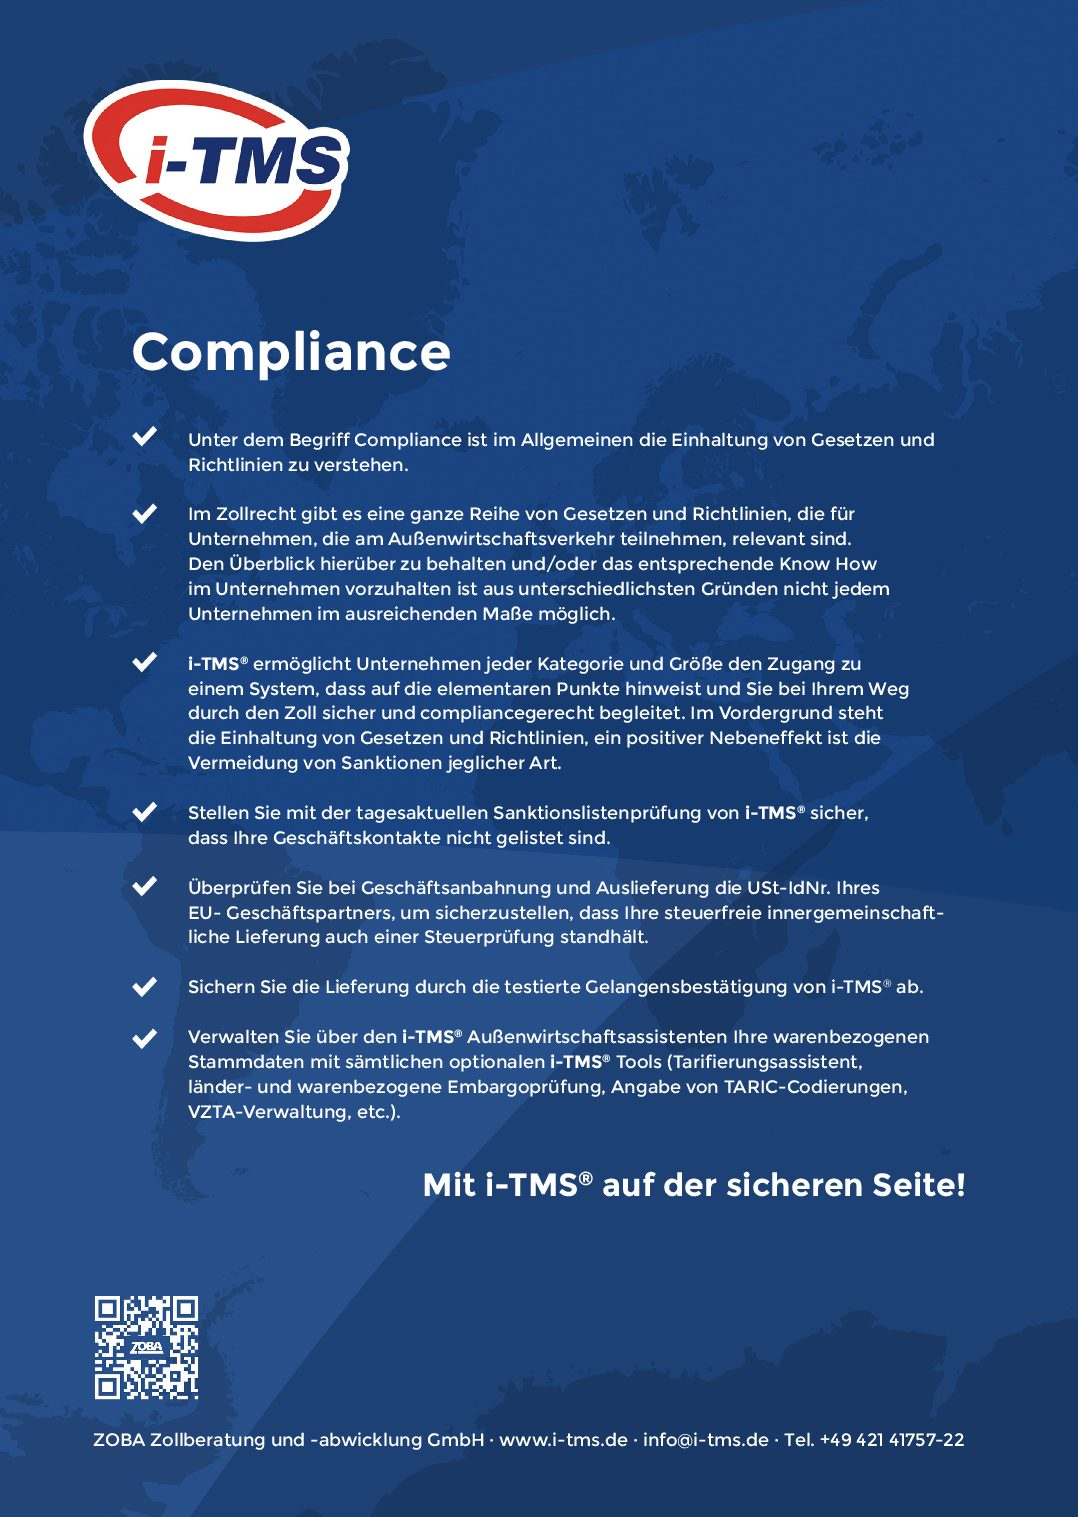 00 Compliance pdf - Downloads